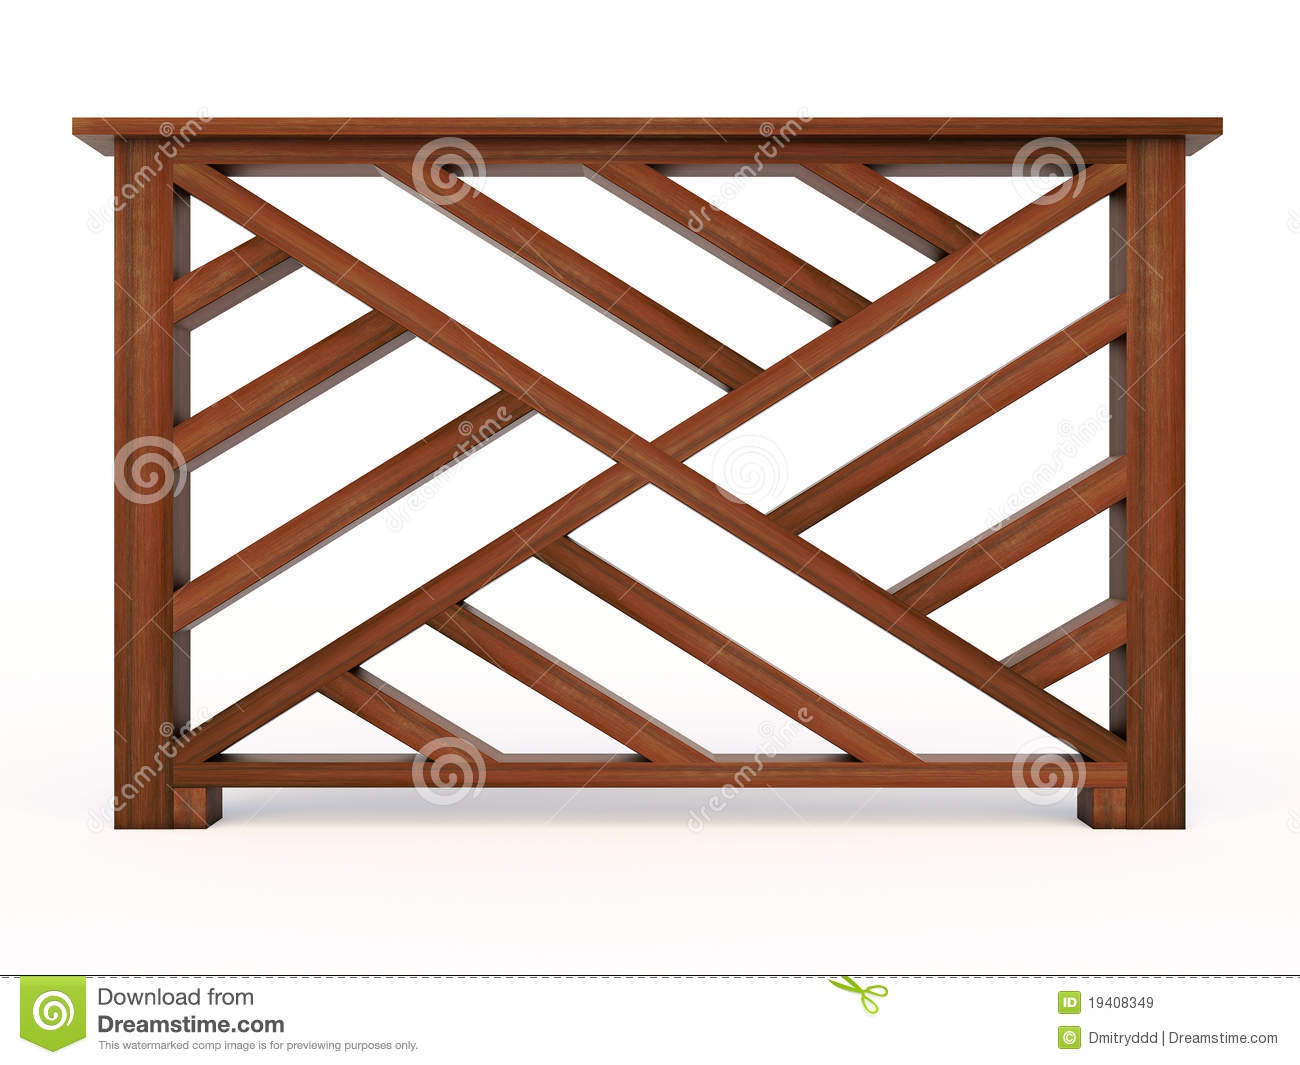 Phantom also Staircase Handrails besides Driveway gates together with Ideas Para Decorar Una Sala Al Estilo Mexicano as well Royalty Free Stock Images Design Wooden Railing Wooden Balusters Image19408349. on handrails design ideas